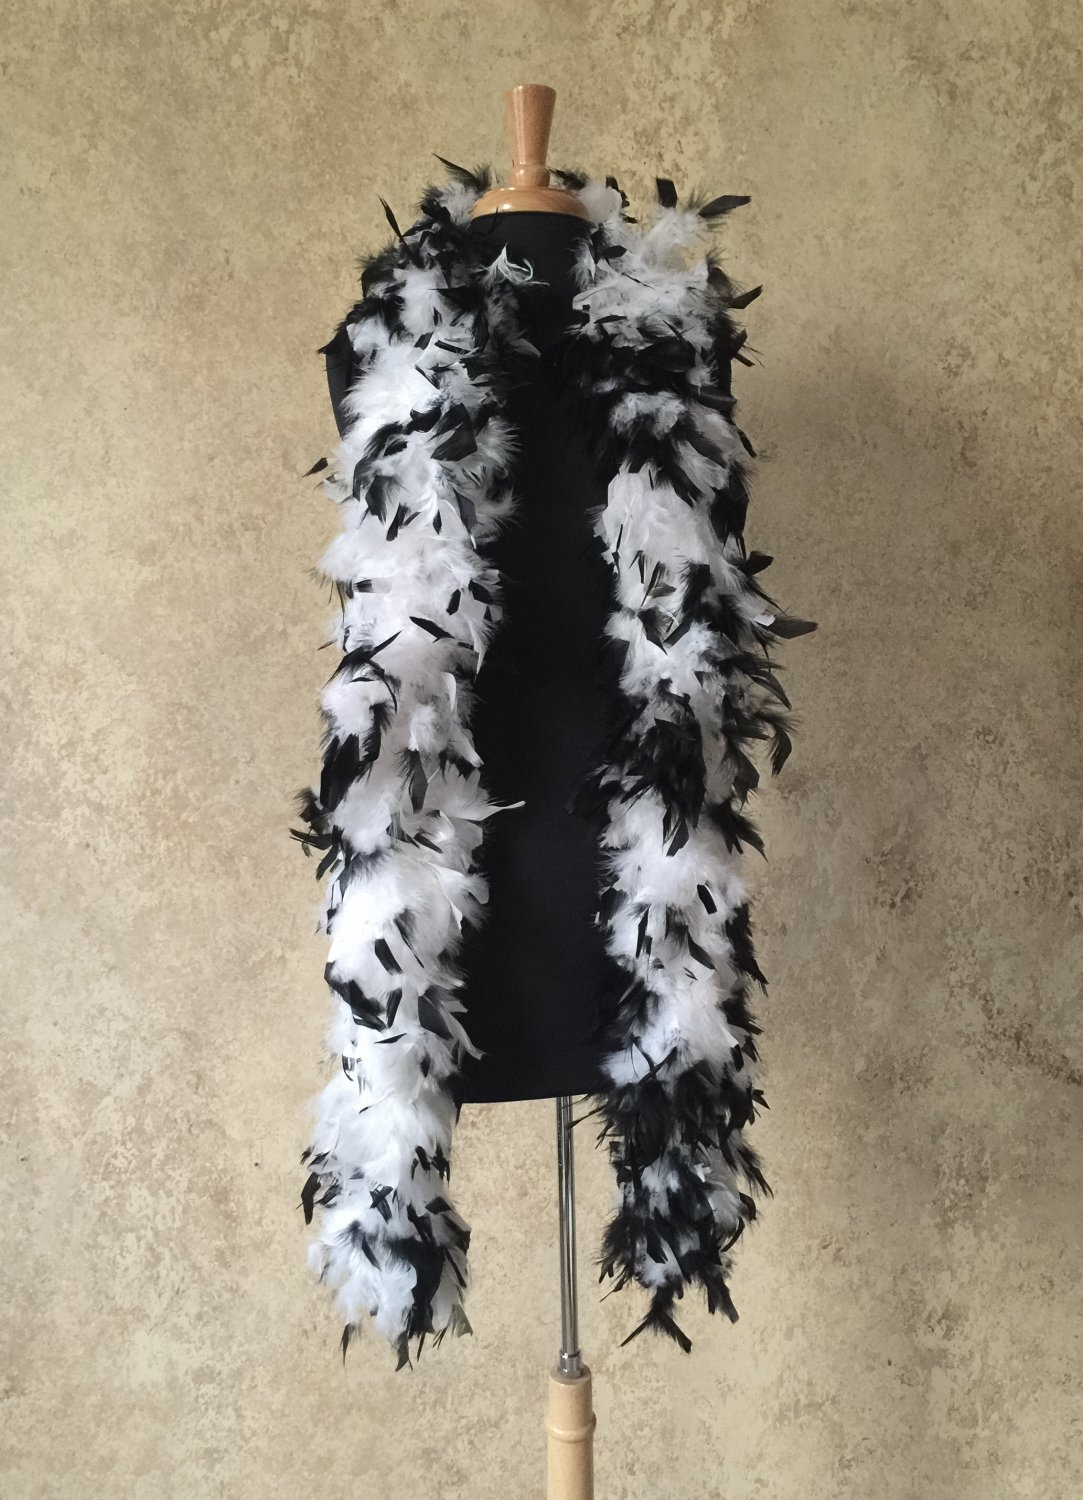 120gm gram  Black Tipped White Chandelle Feather Boa Halloween Costume Mardi gras